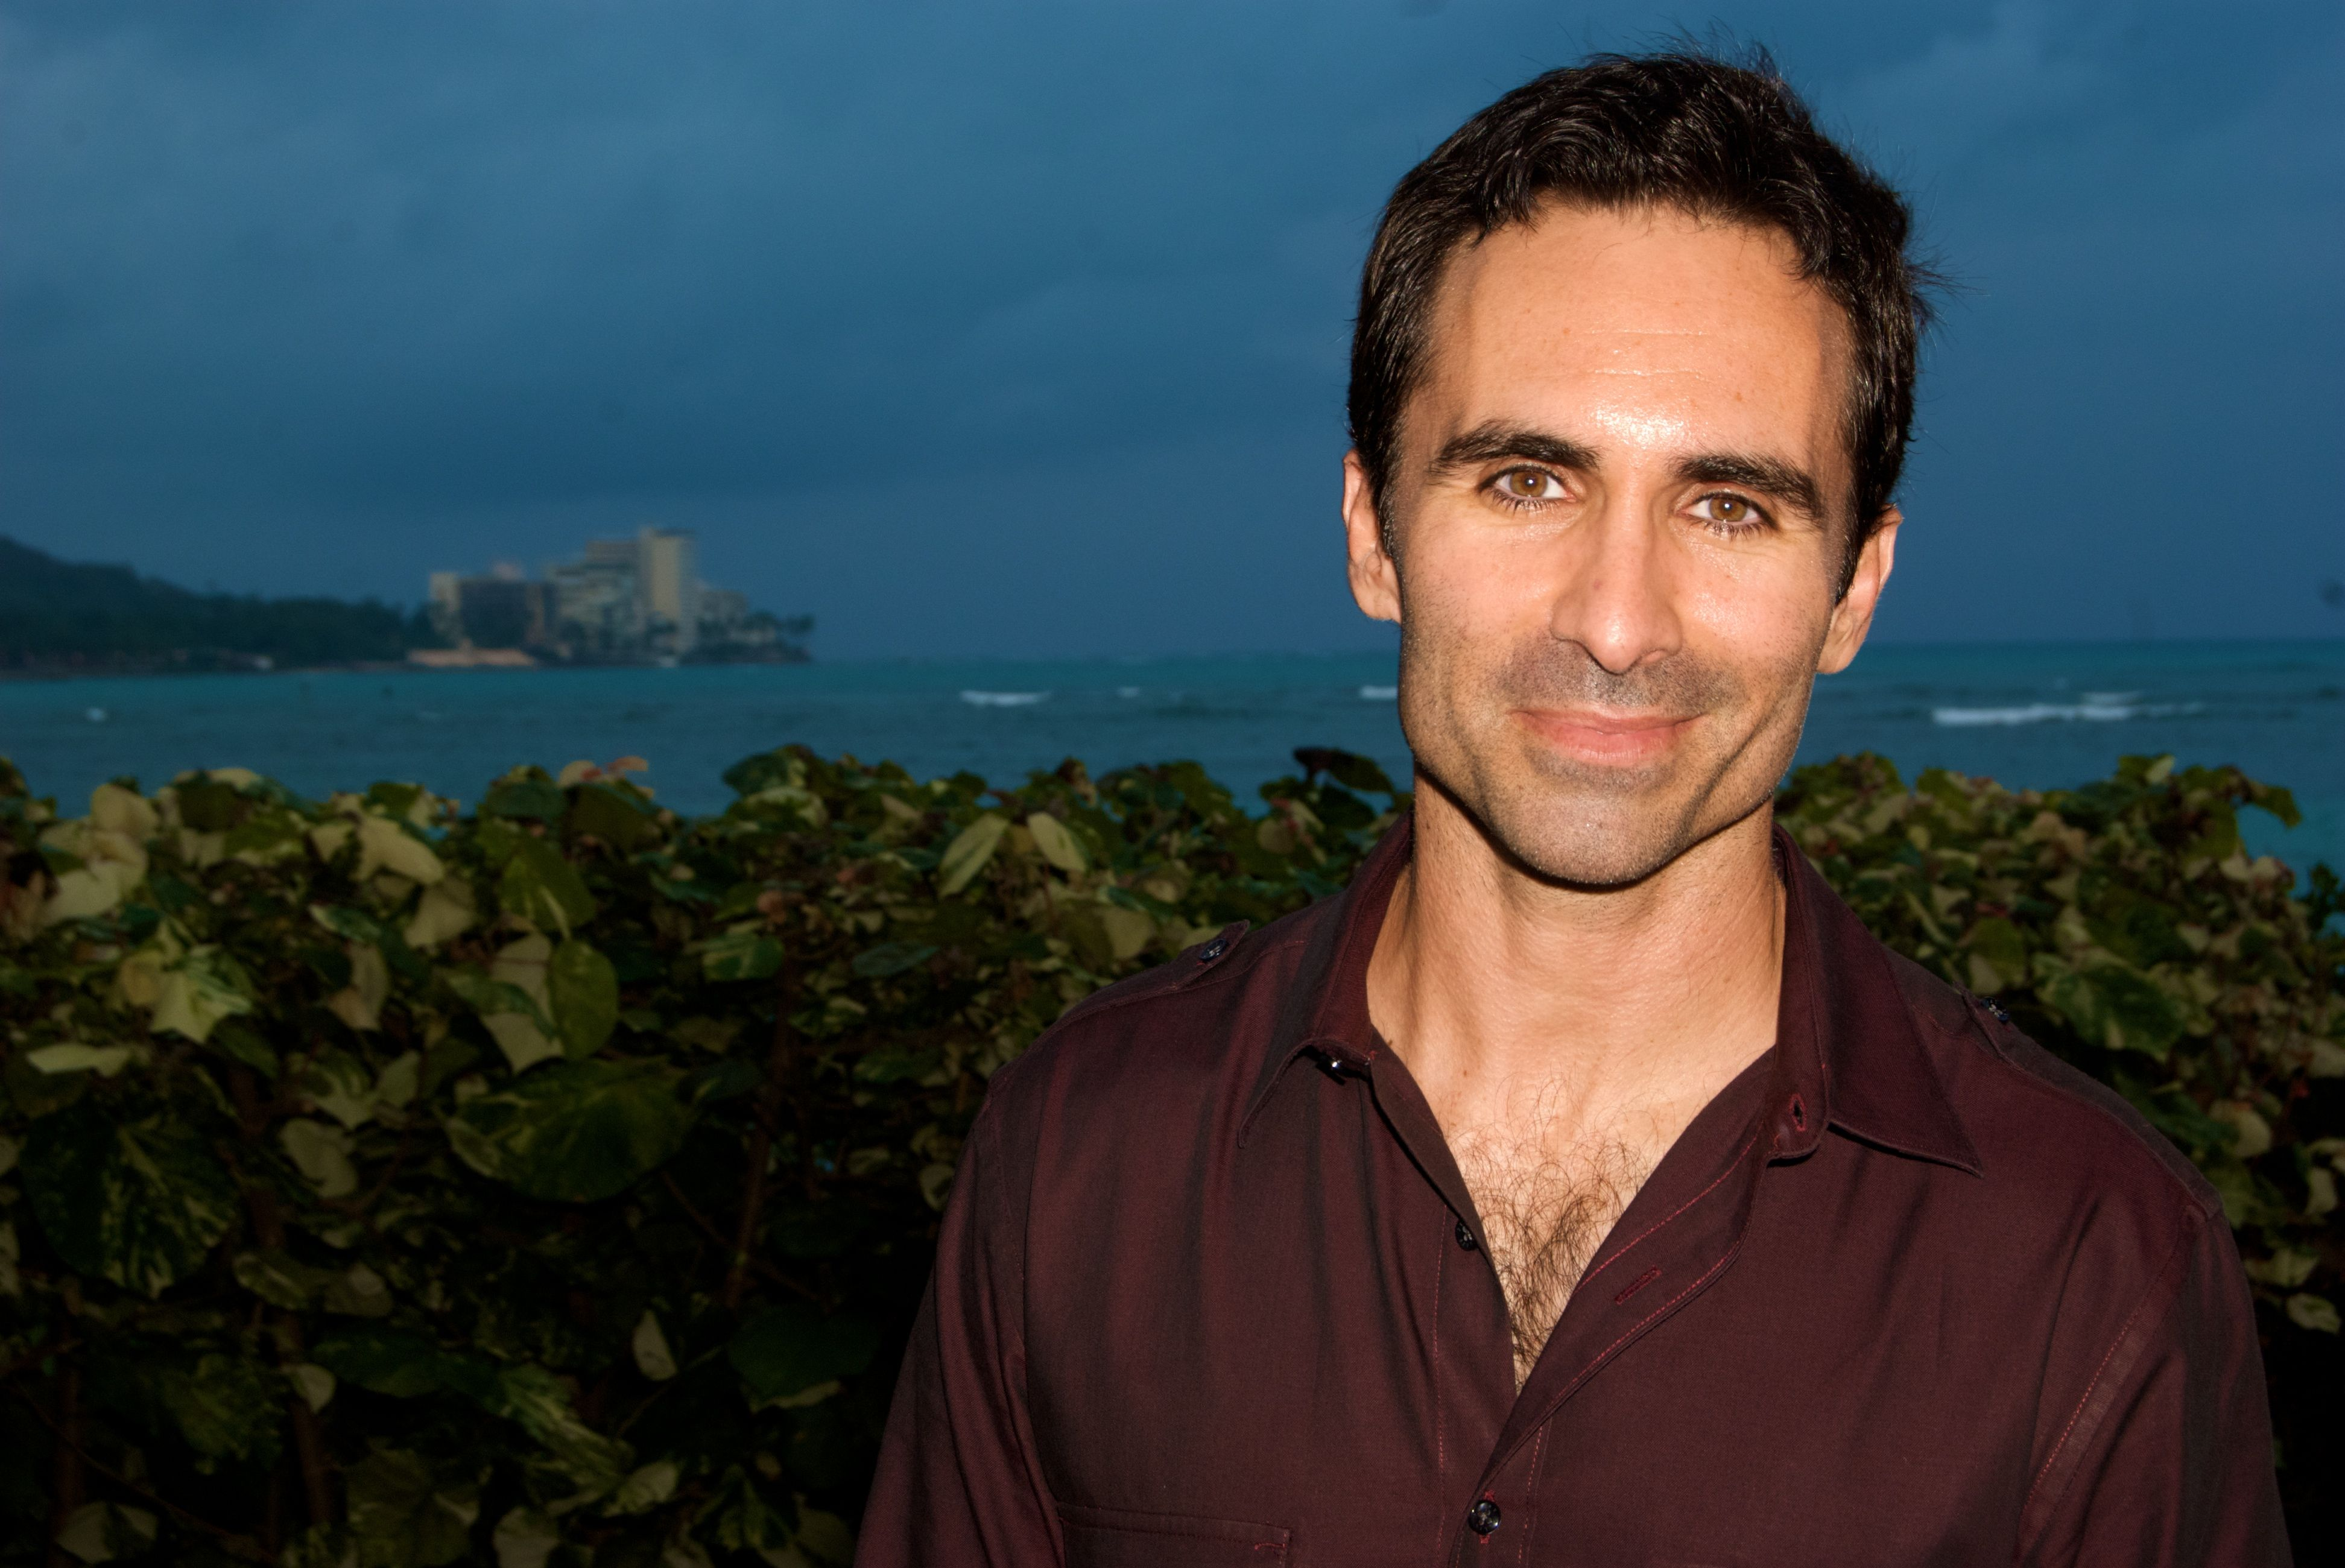 nestor carbonell twitternestor carbonell rihanna, nestor carbonell eyes, nestor carbonell natal chart, nestor carbonell wife, nestor carbonell and anthony perkins, nestor carbonell height, nestor carbonell eyeliner, nestor carbonell instagram, nestor carbonell pepsi, nestor carbonell twitter, nestor carbonell good wife, nestor carbonell home, nestor carbonell, nestor carbonell lost, nestor carbonell eyelashes, nestor carbonell imdb, nestor carbonell eyeliner tattoo, nestor carbonell spanish, nestor carbonell shirtless, nestor carbonell net worth